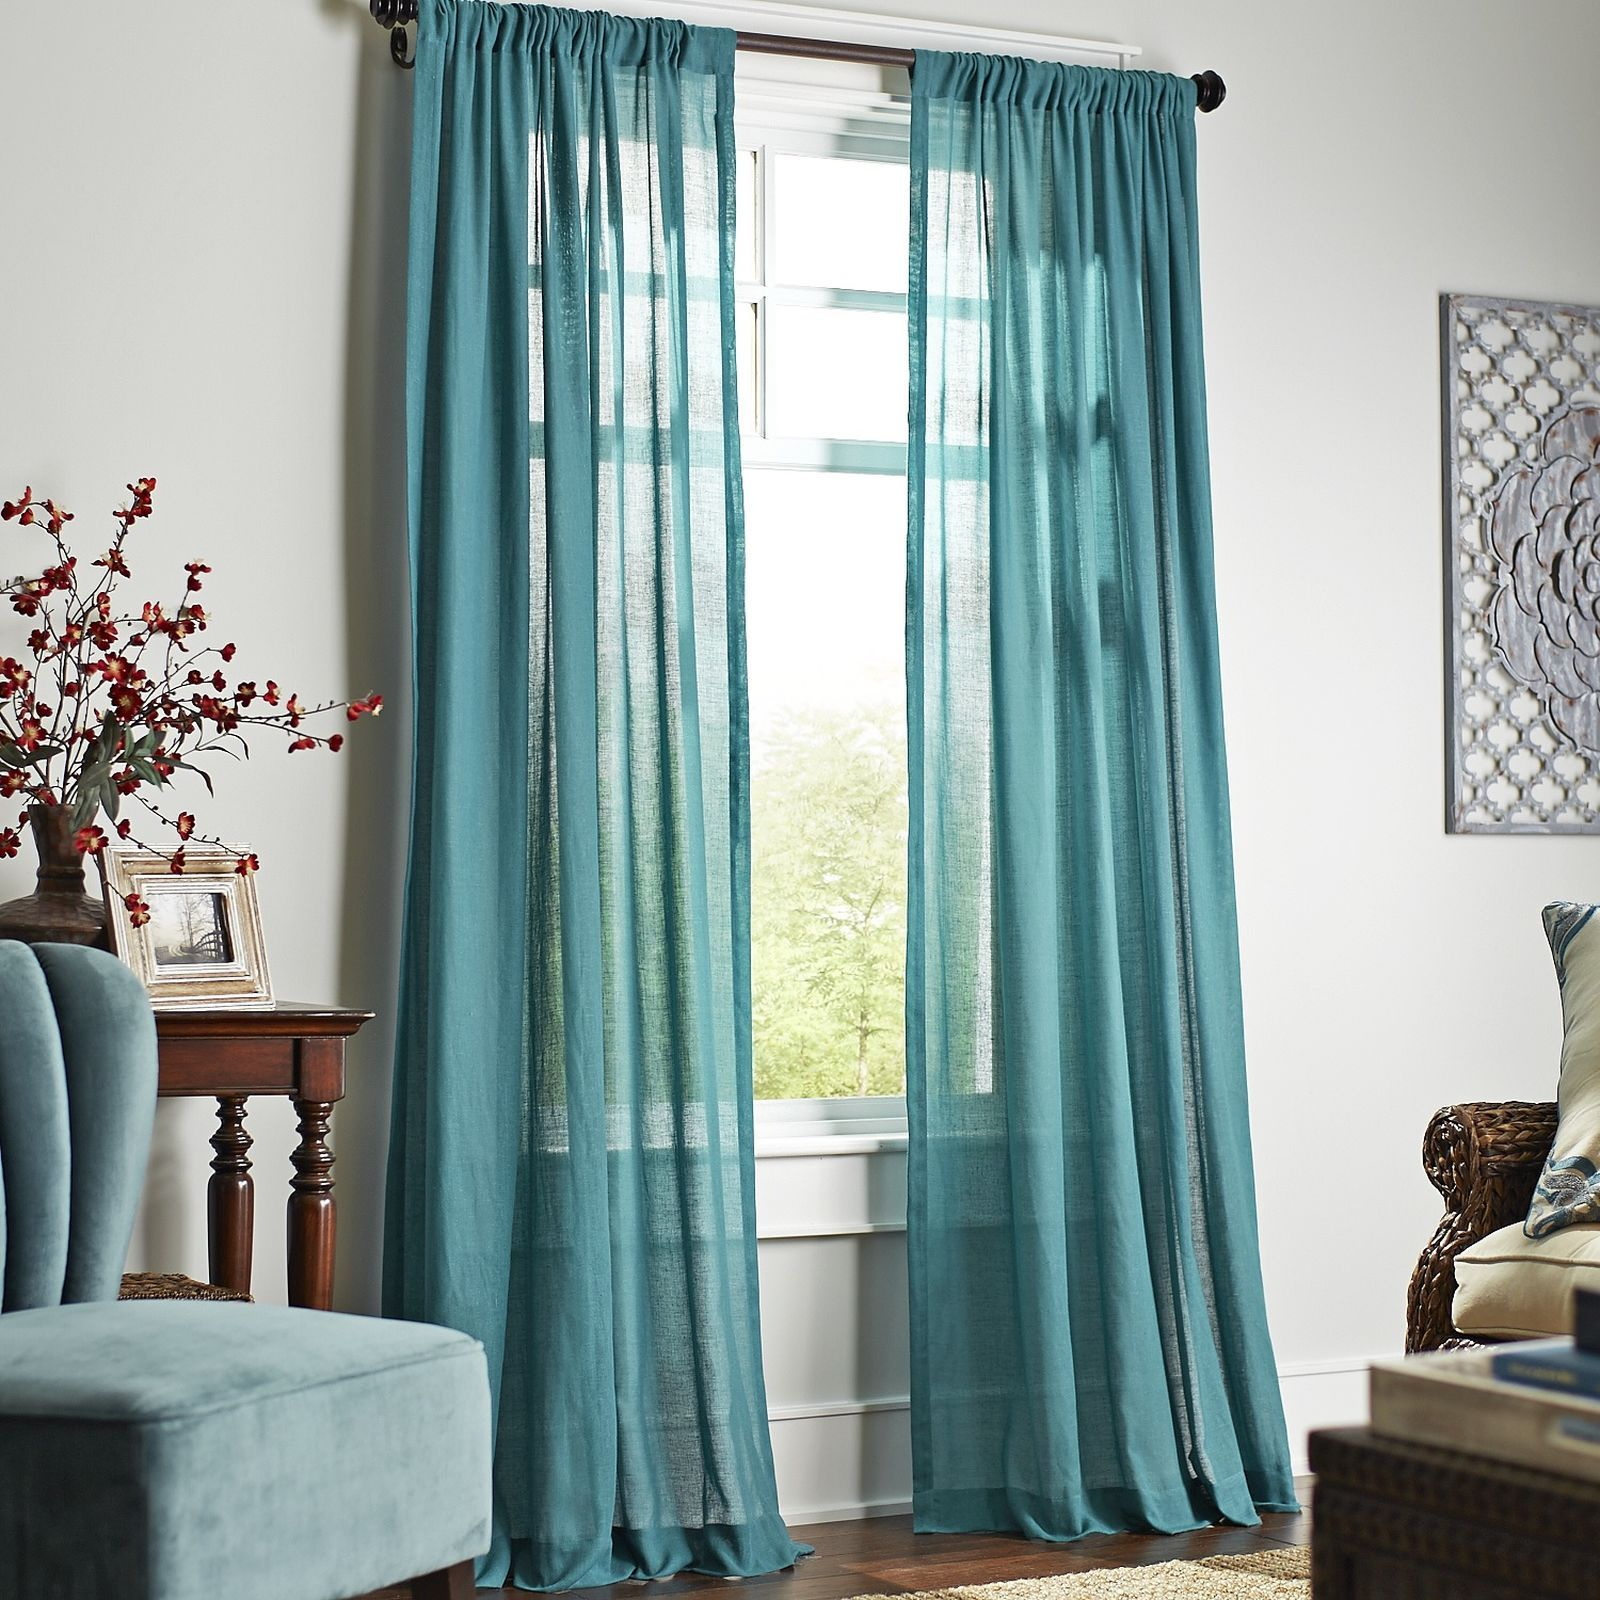 Quinn Sheer Curtain Teal Pier 1 Imports Turquoise Curtains Living Room Living Room Drapes Teal Living Rooms